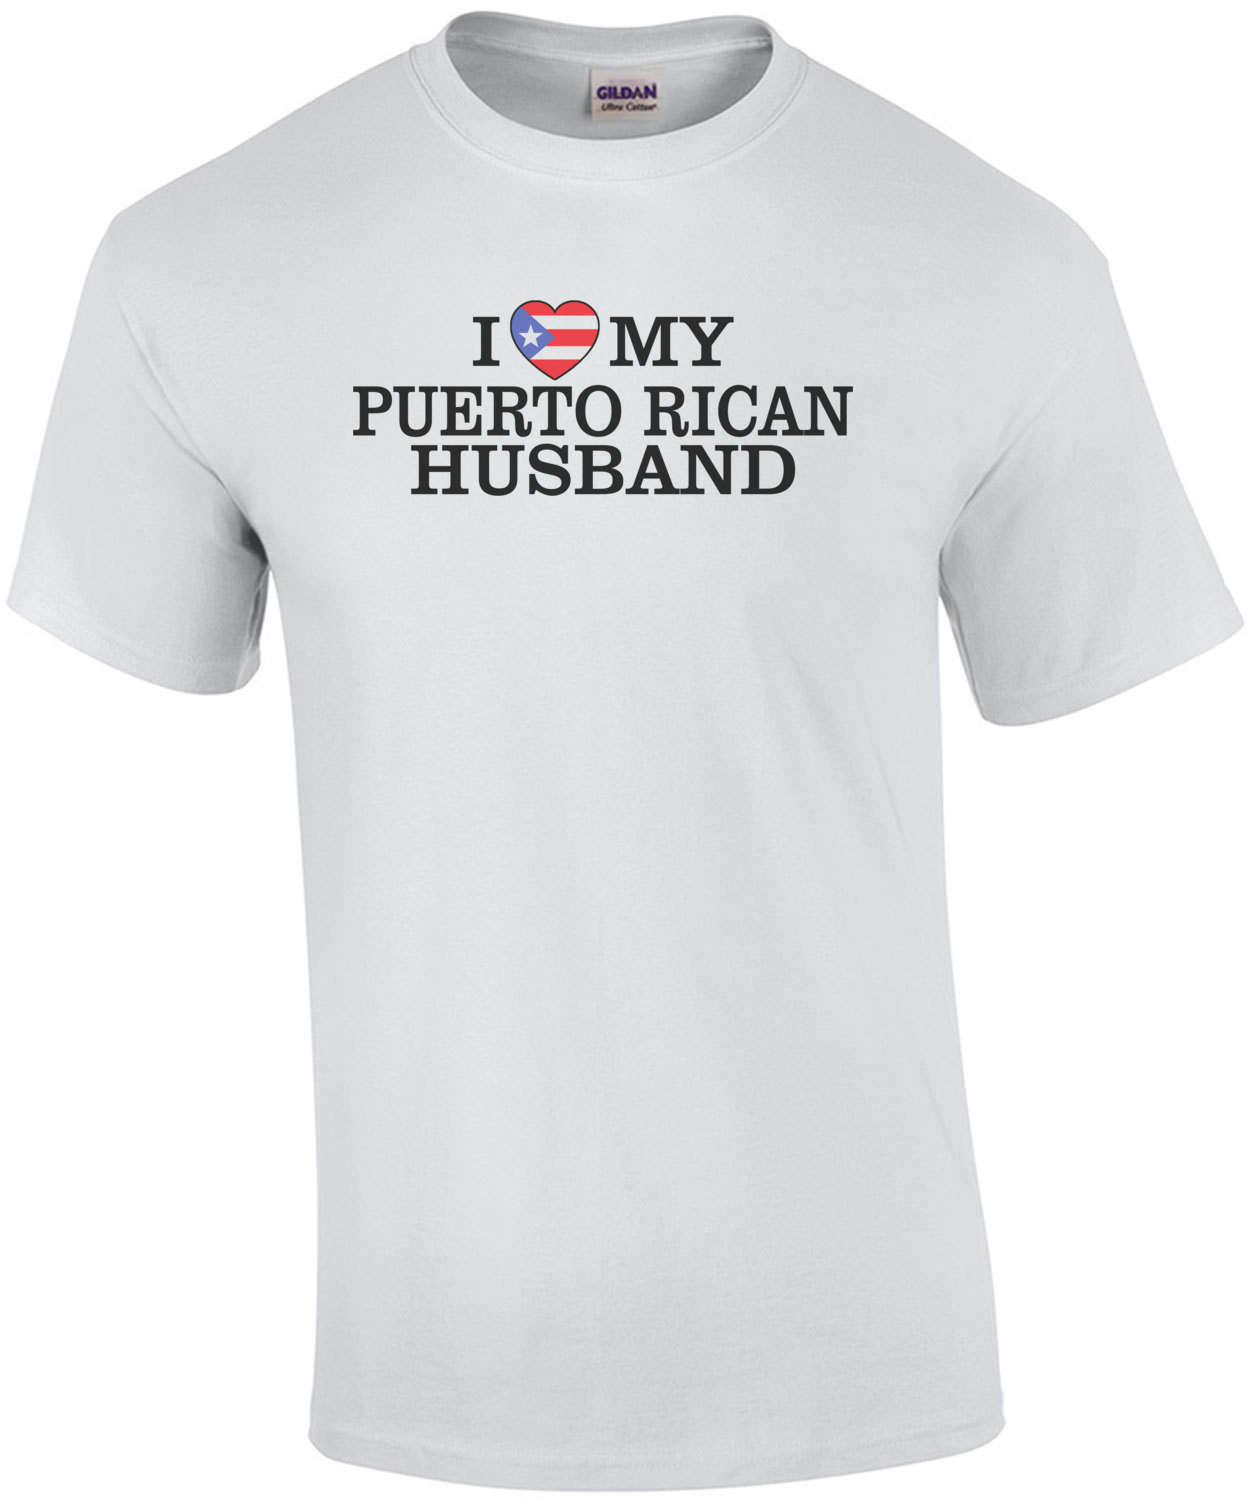 I Heart My Puerto Rican Husband T-Shirt